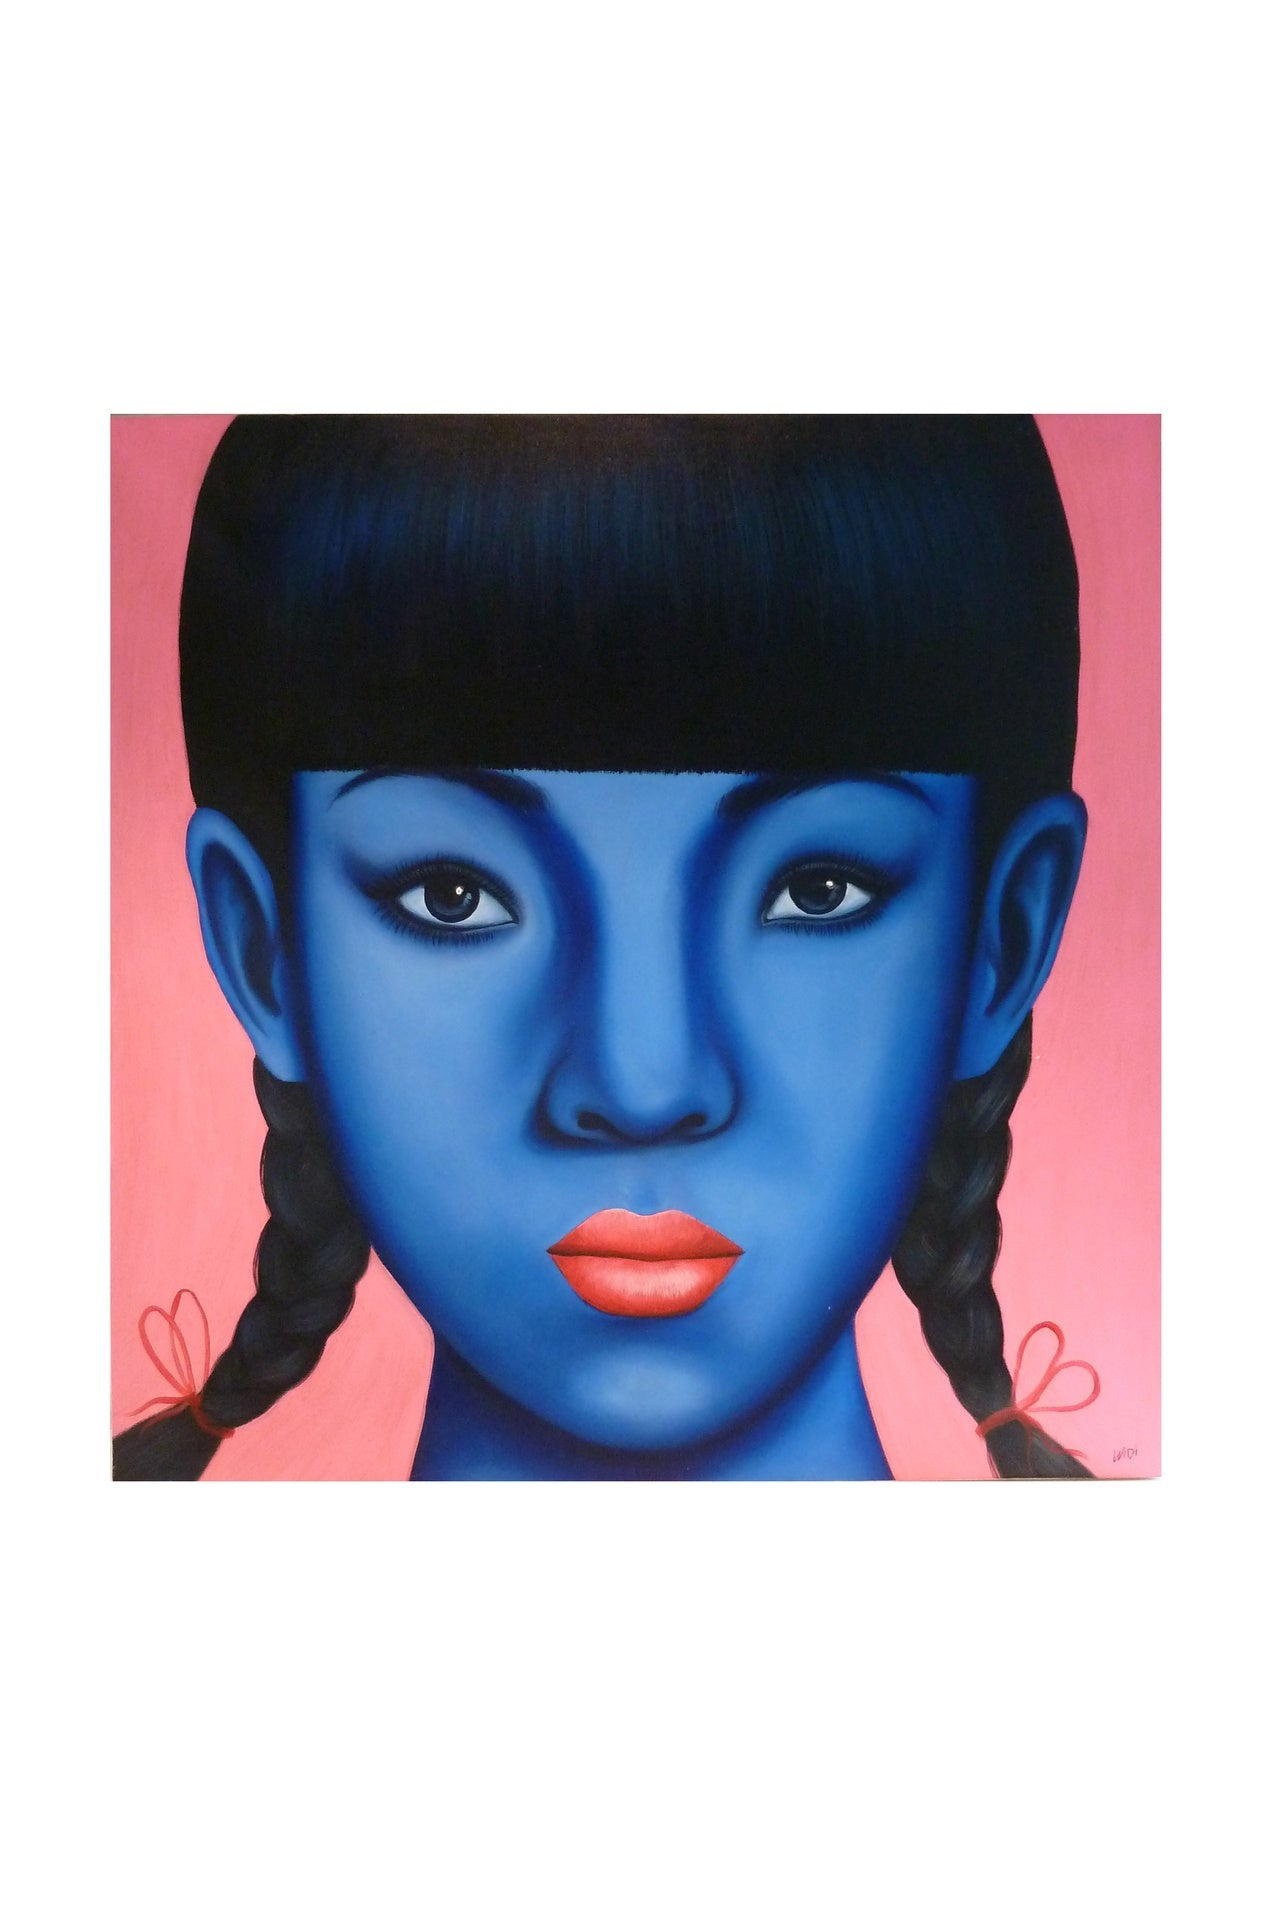 Oriental Girl with Blue Face & Plaits, Pink Lips